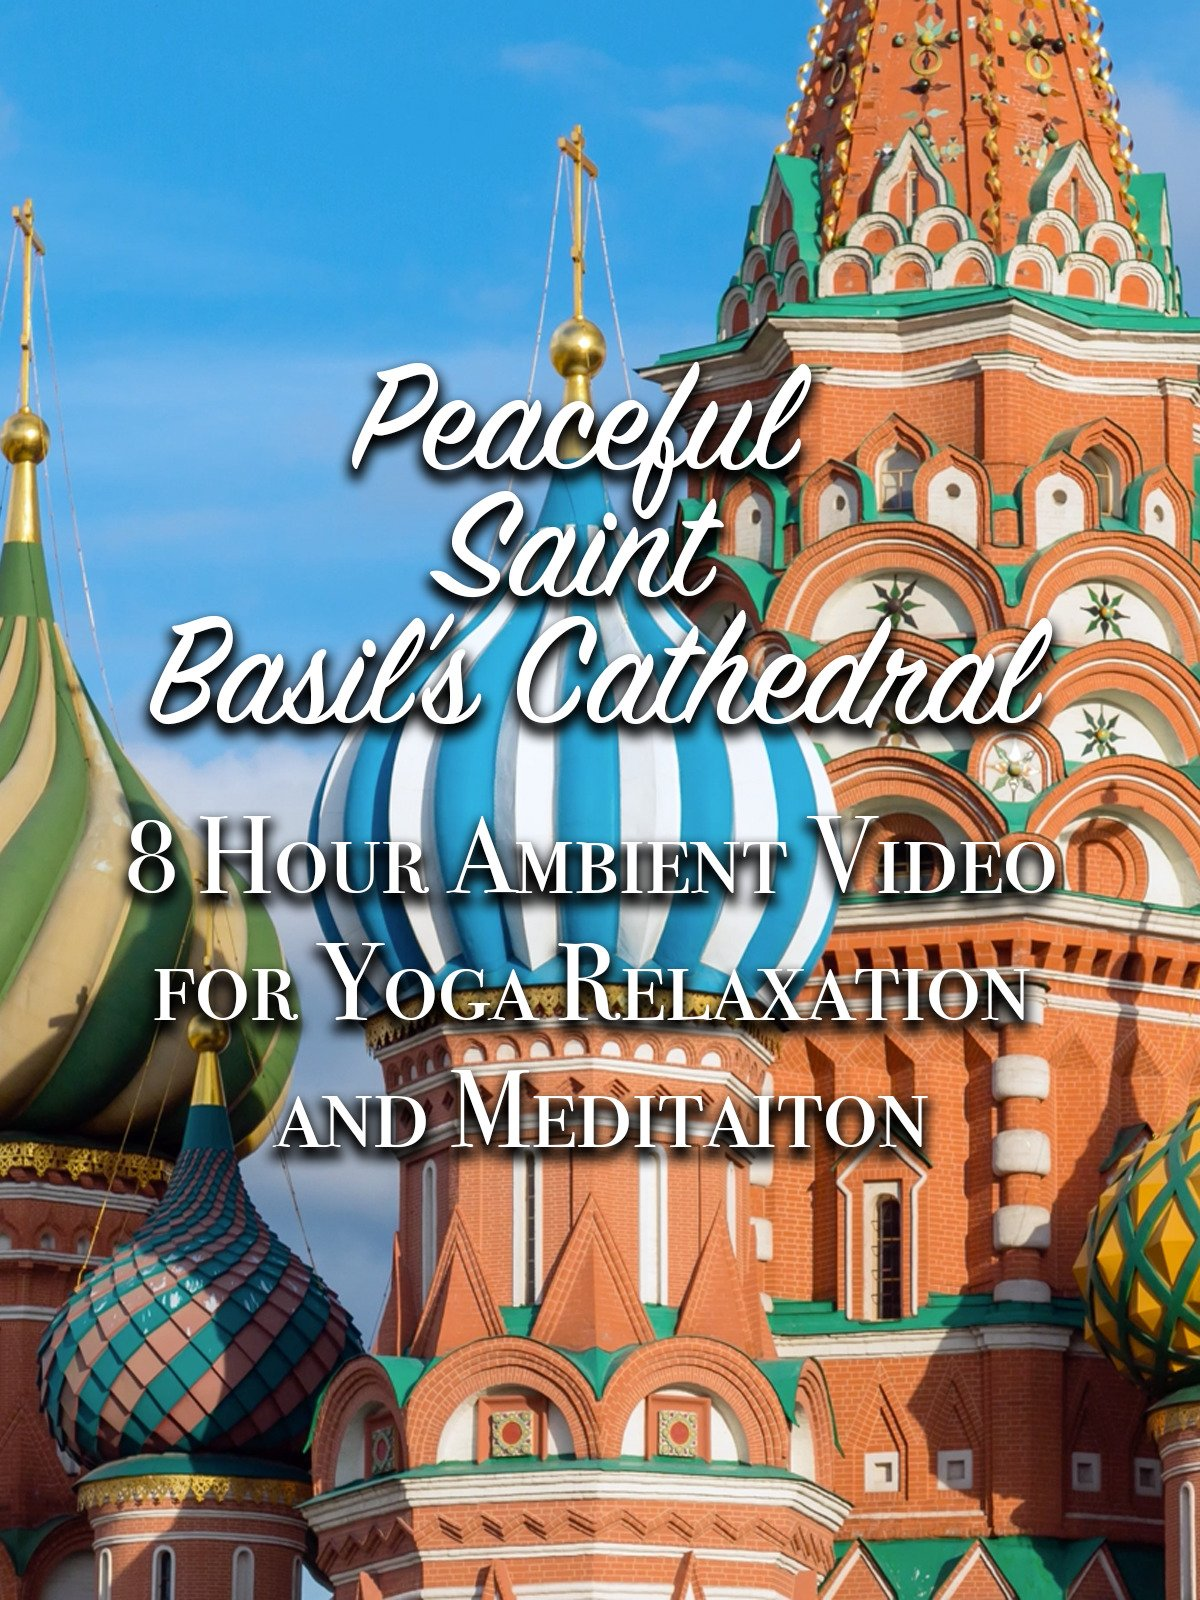 Peaceful Saint Basil's Cathedral 8 Hour Ambient Video for Yoga Relaxation and Meditation